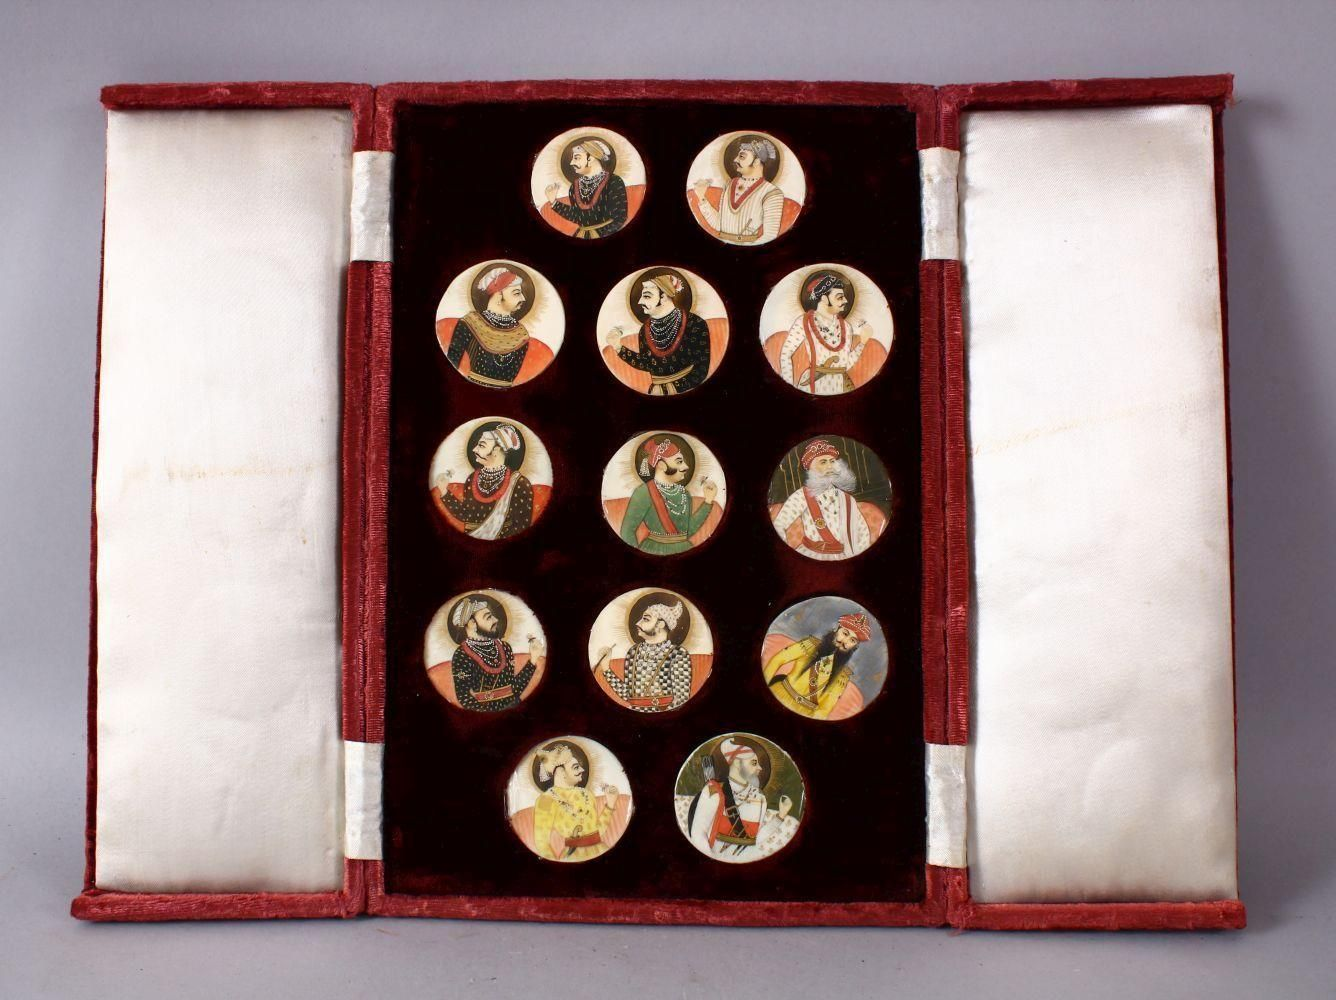 A BOXED SET OF THIRTEEN 18TH/19TH CENTURY PERSIAN CARVED & PAINTED IVORY MINIATURES, each of the